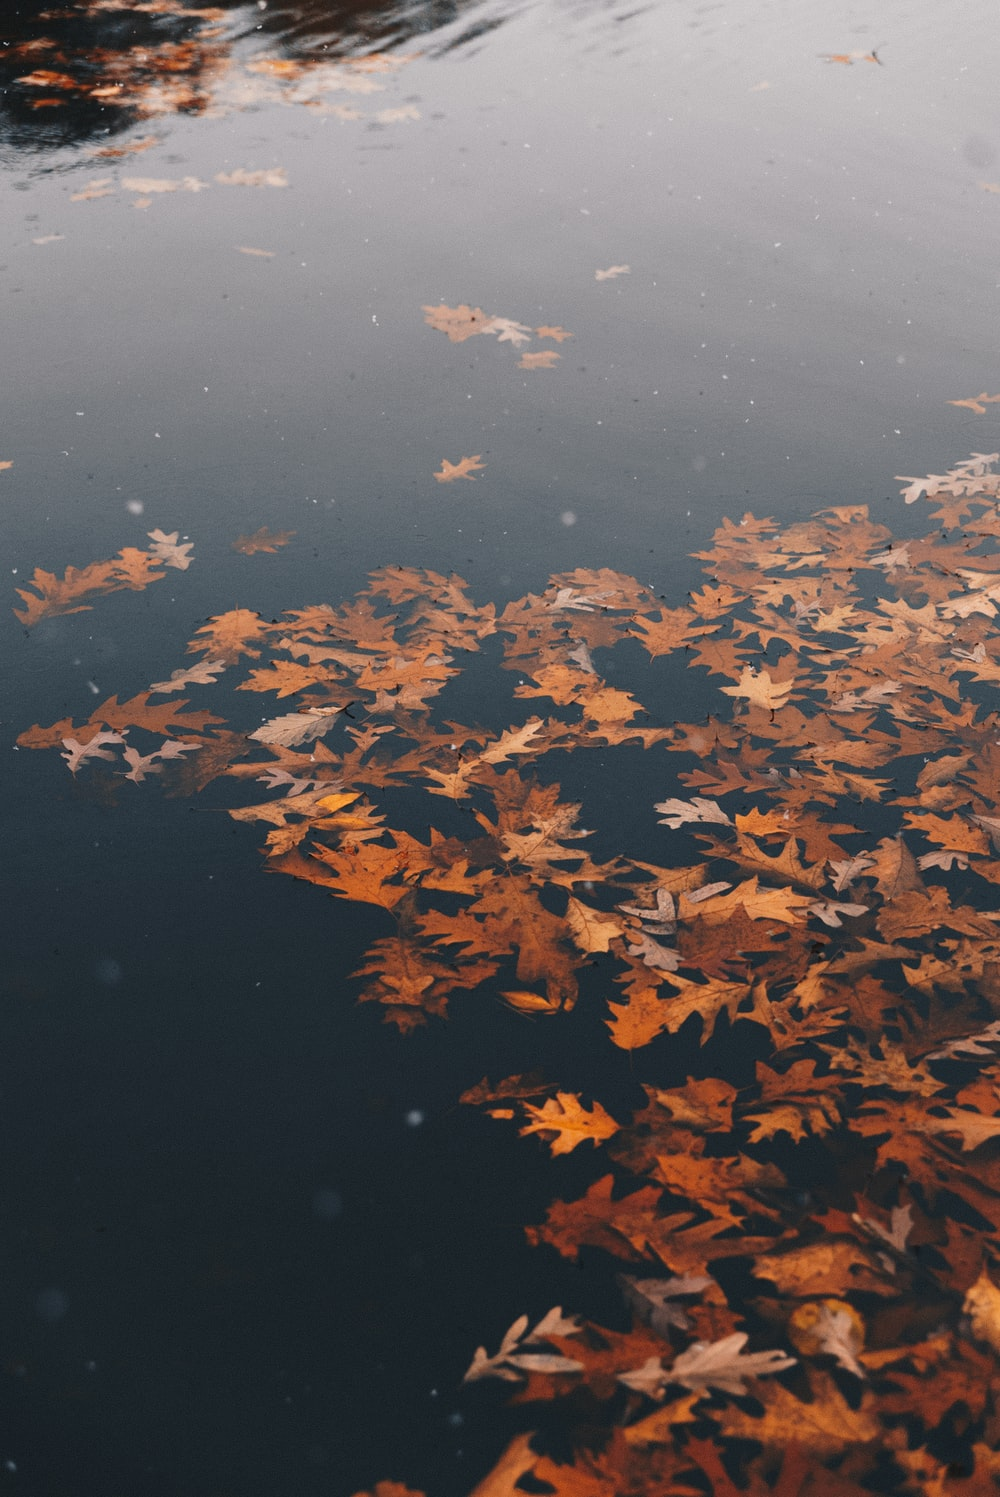 brown withered leaves on water at daytime